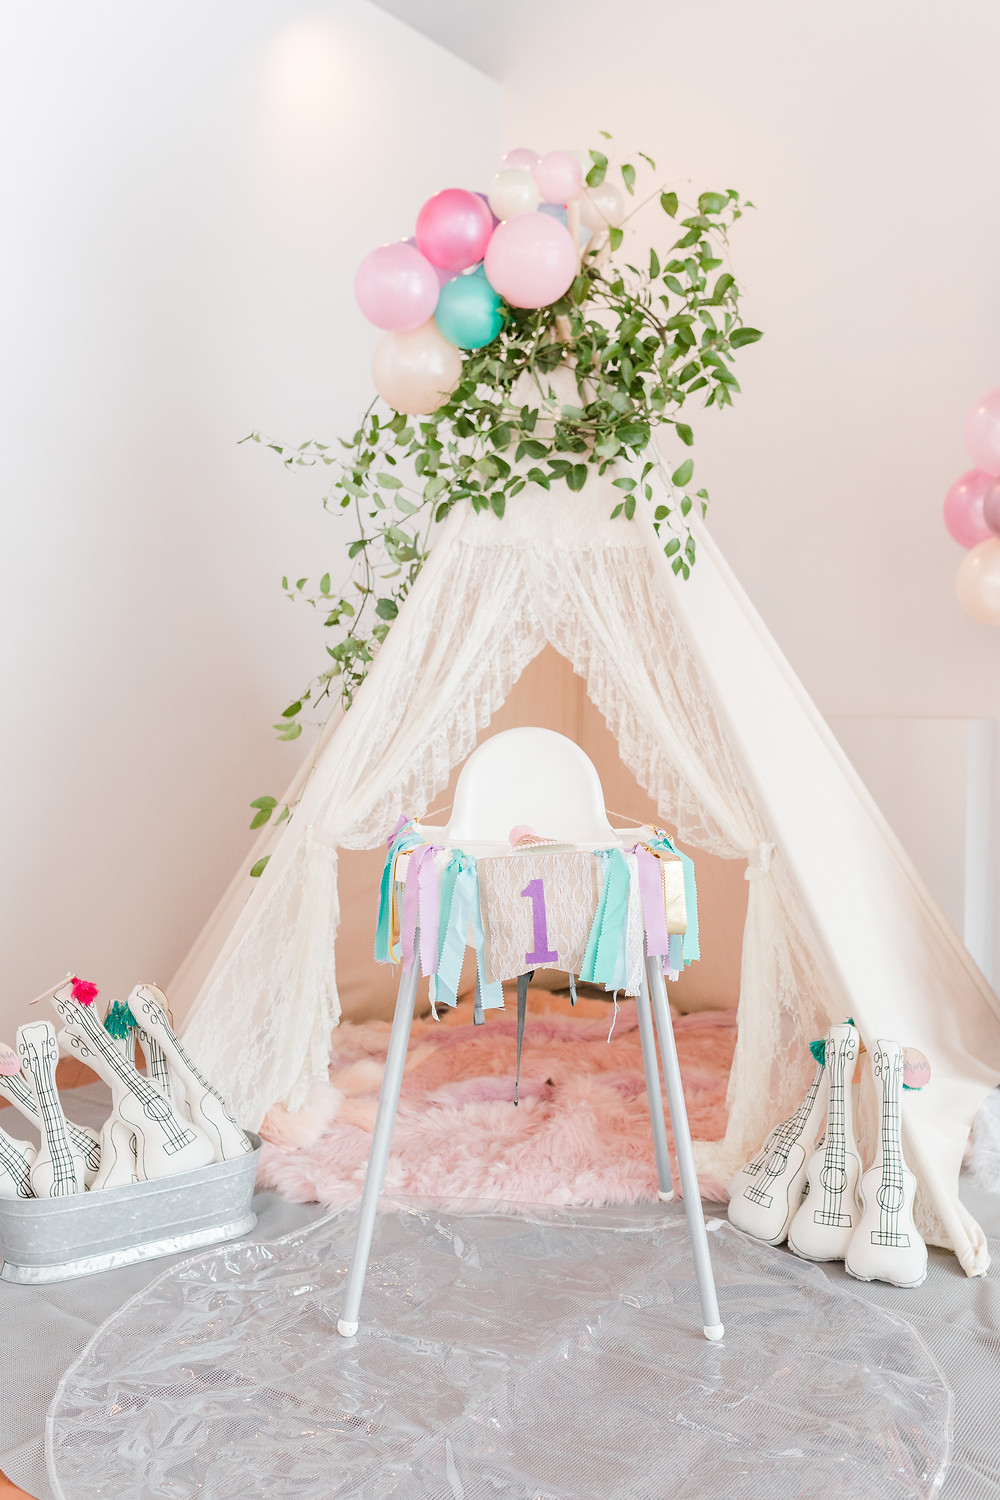 Child-sized teepee for kids to play, and backdrop for smash cake display